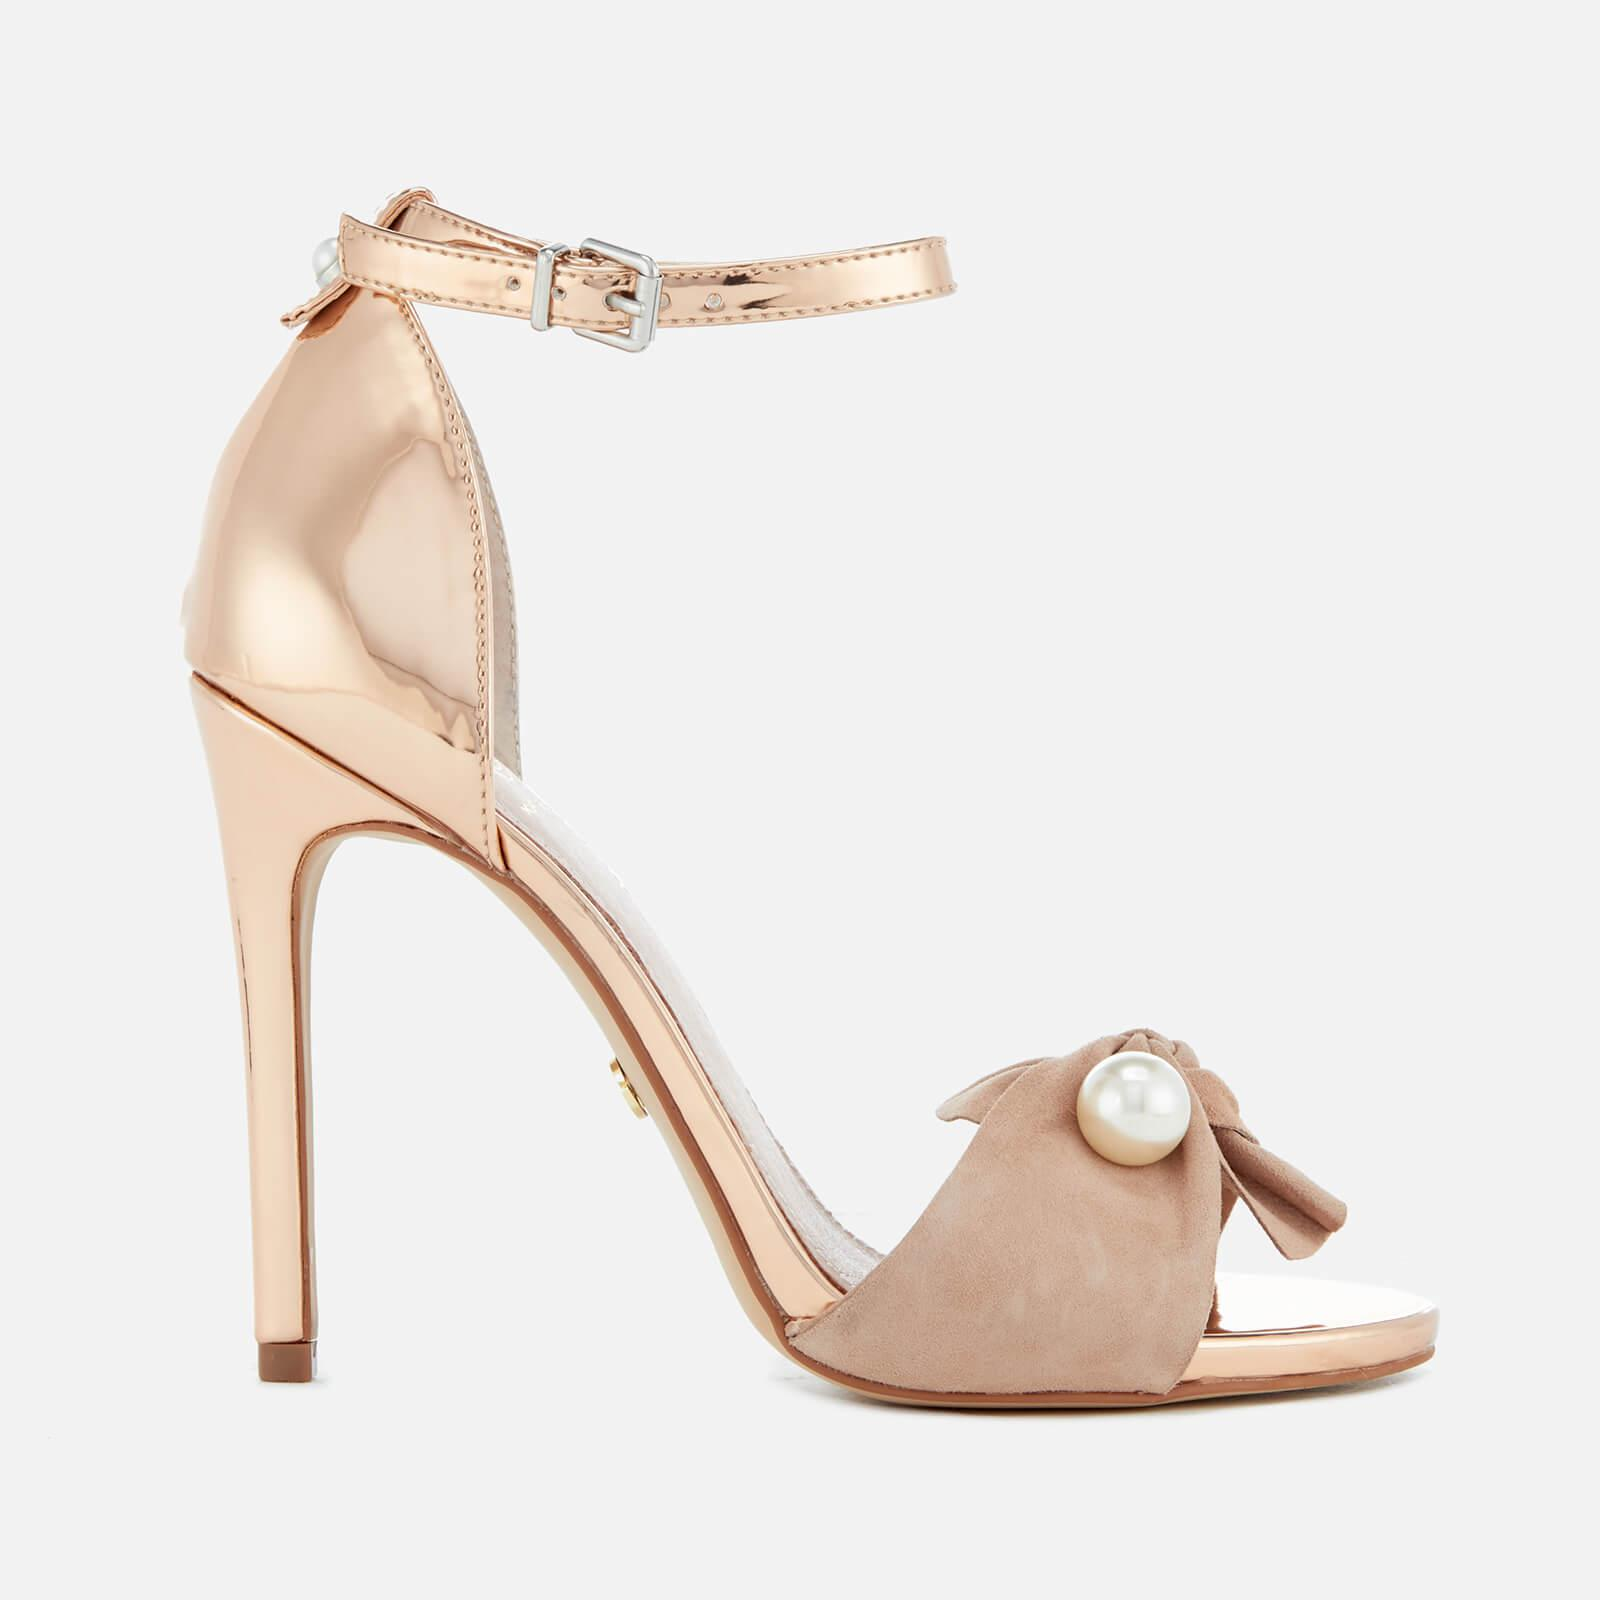 57ed9ac5b75f Kg By Kurt Geiger Women s Hermione Suede Barely There Heeled Sandals ...